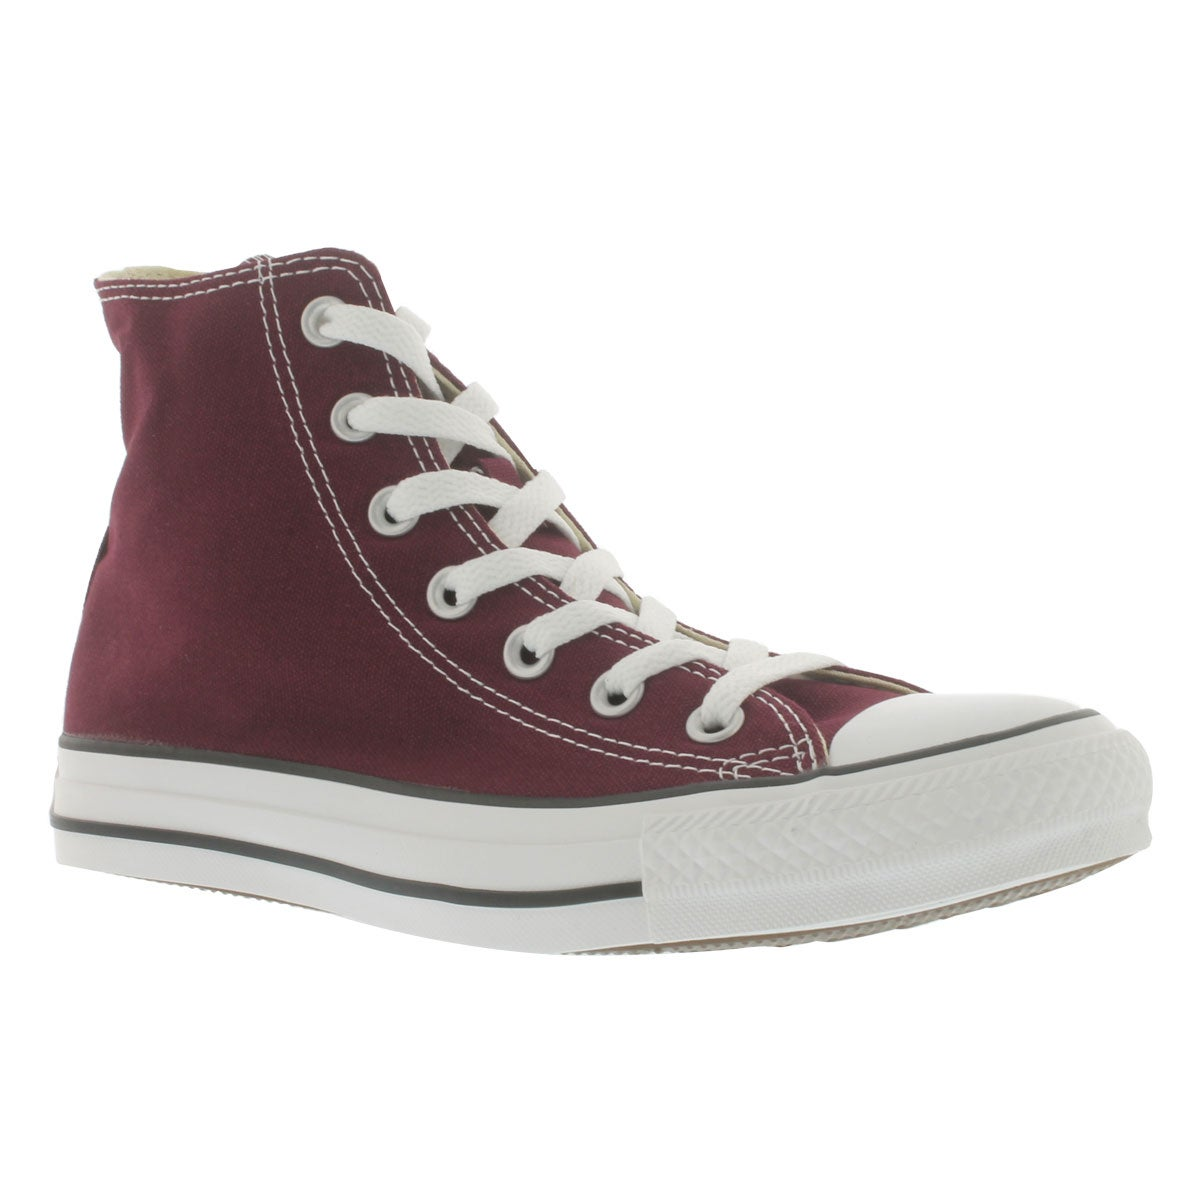 Lds CT All Star Core burg high top